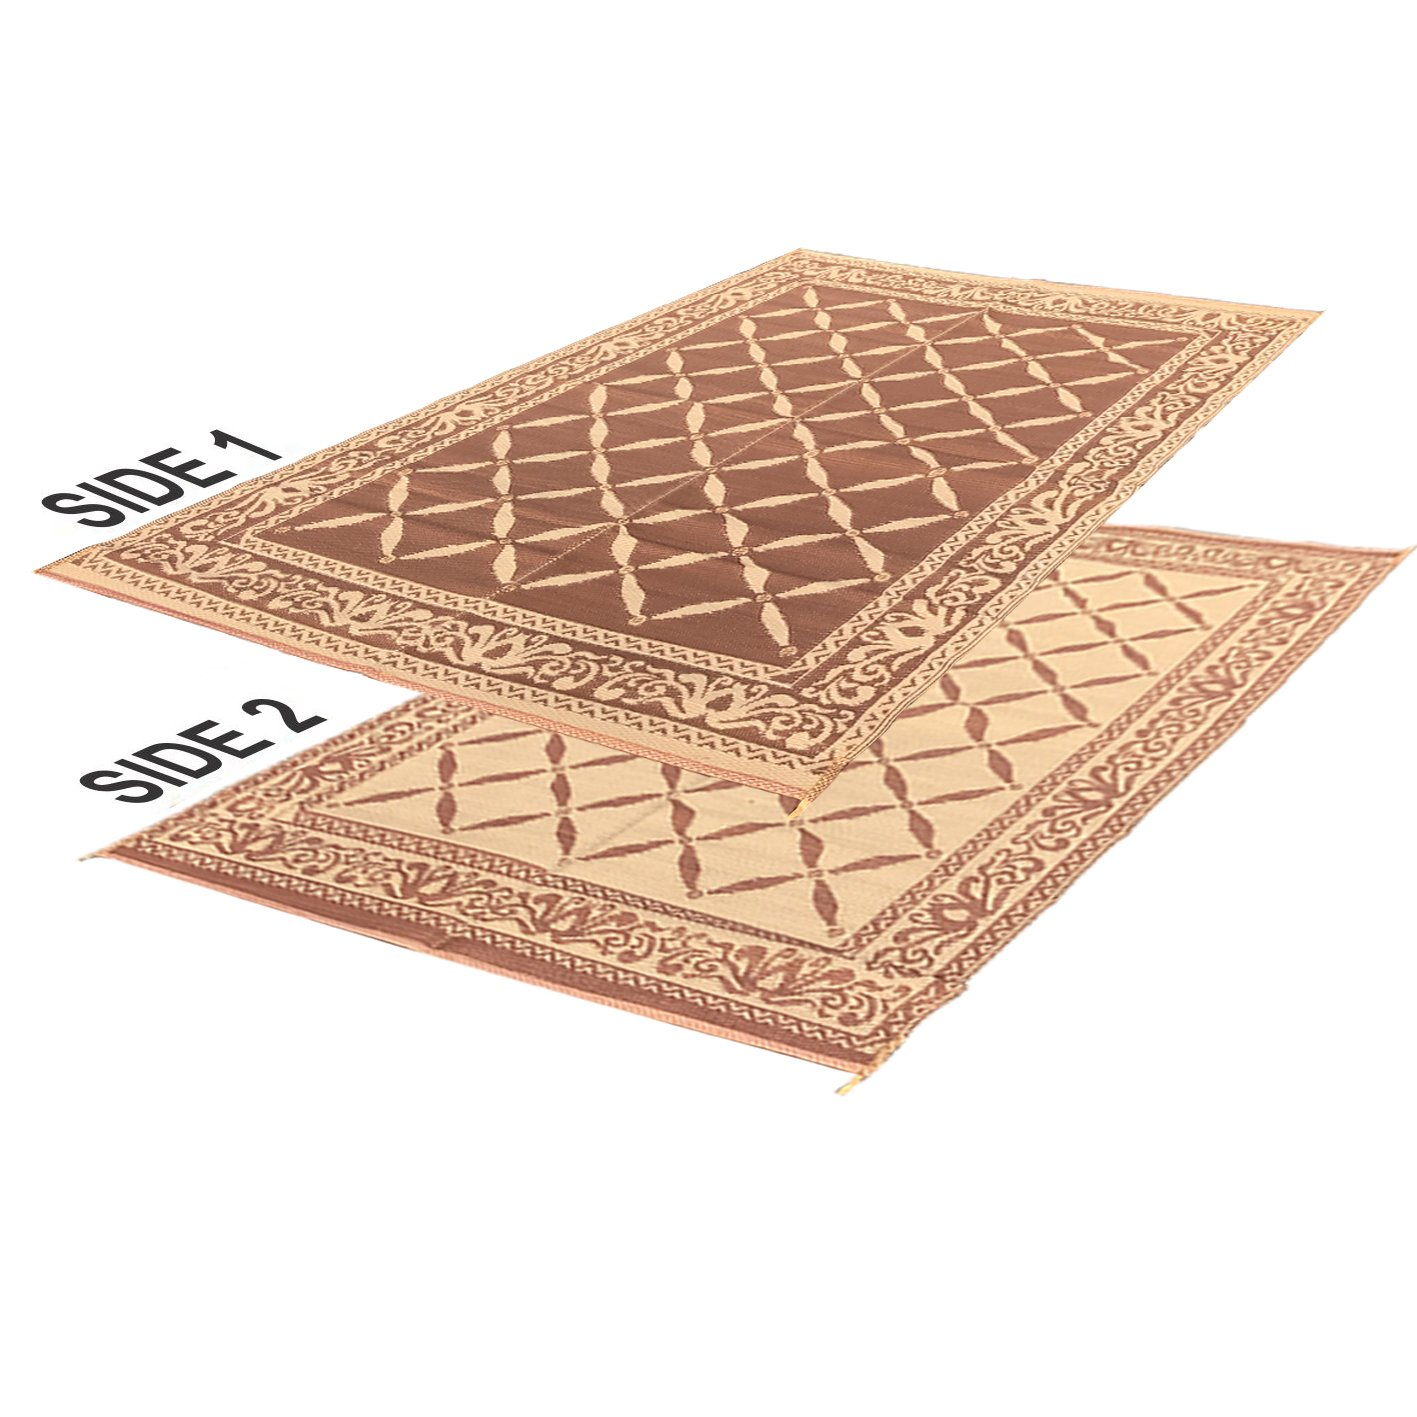 Reversible Rv Mat Carrying Strap EasyGoProducts EGP-RVM-008 6 x 9 Outdoor Patio Mat EasyGO Products Rv Camping Mats